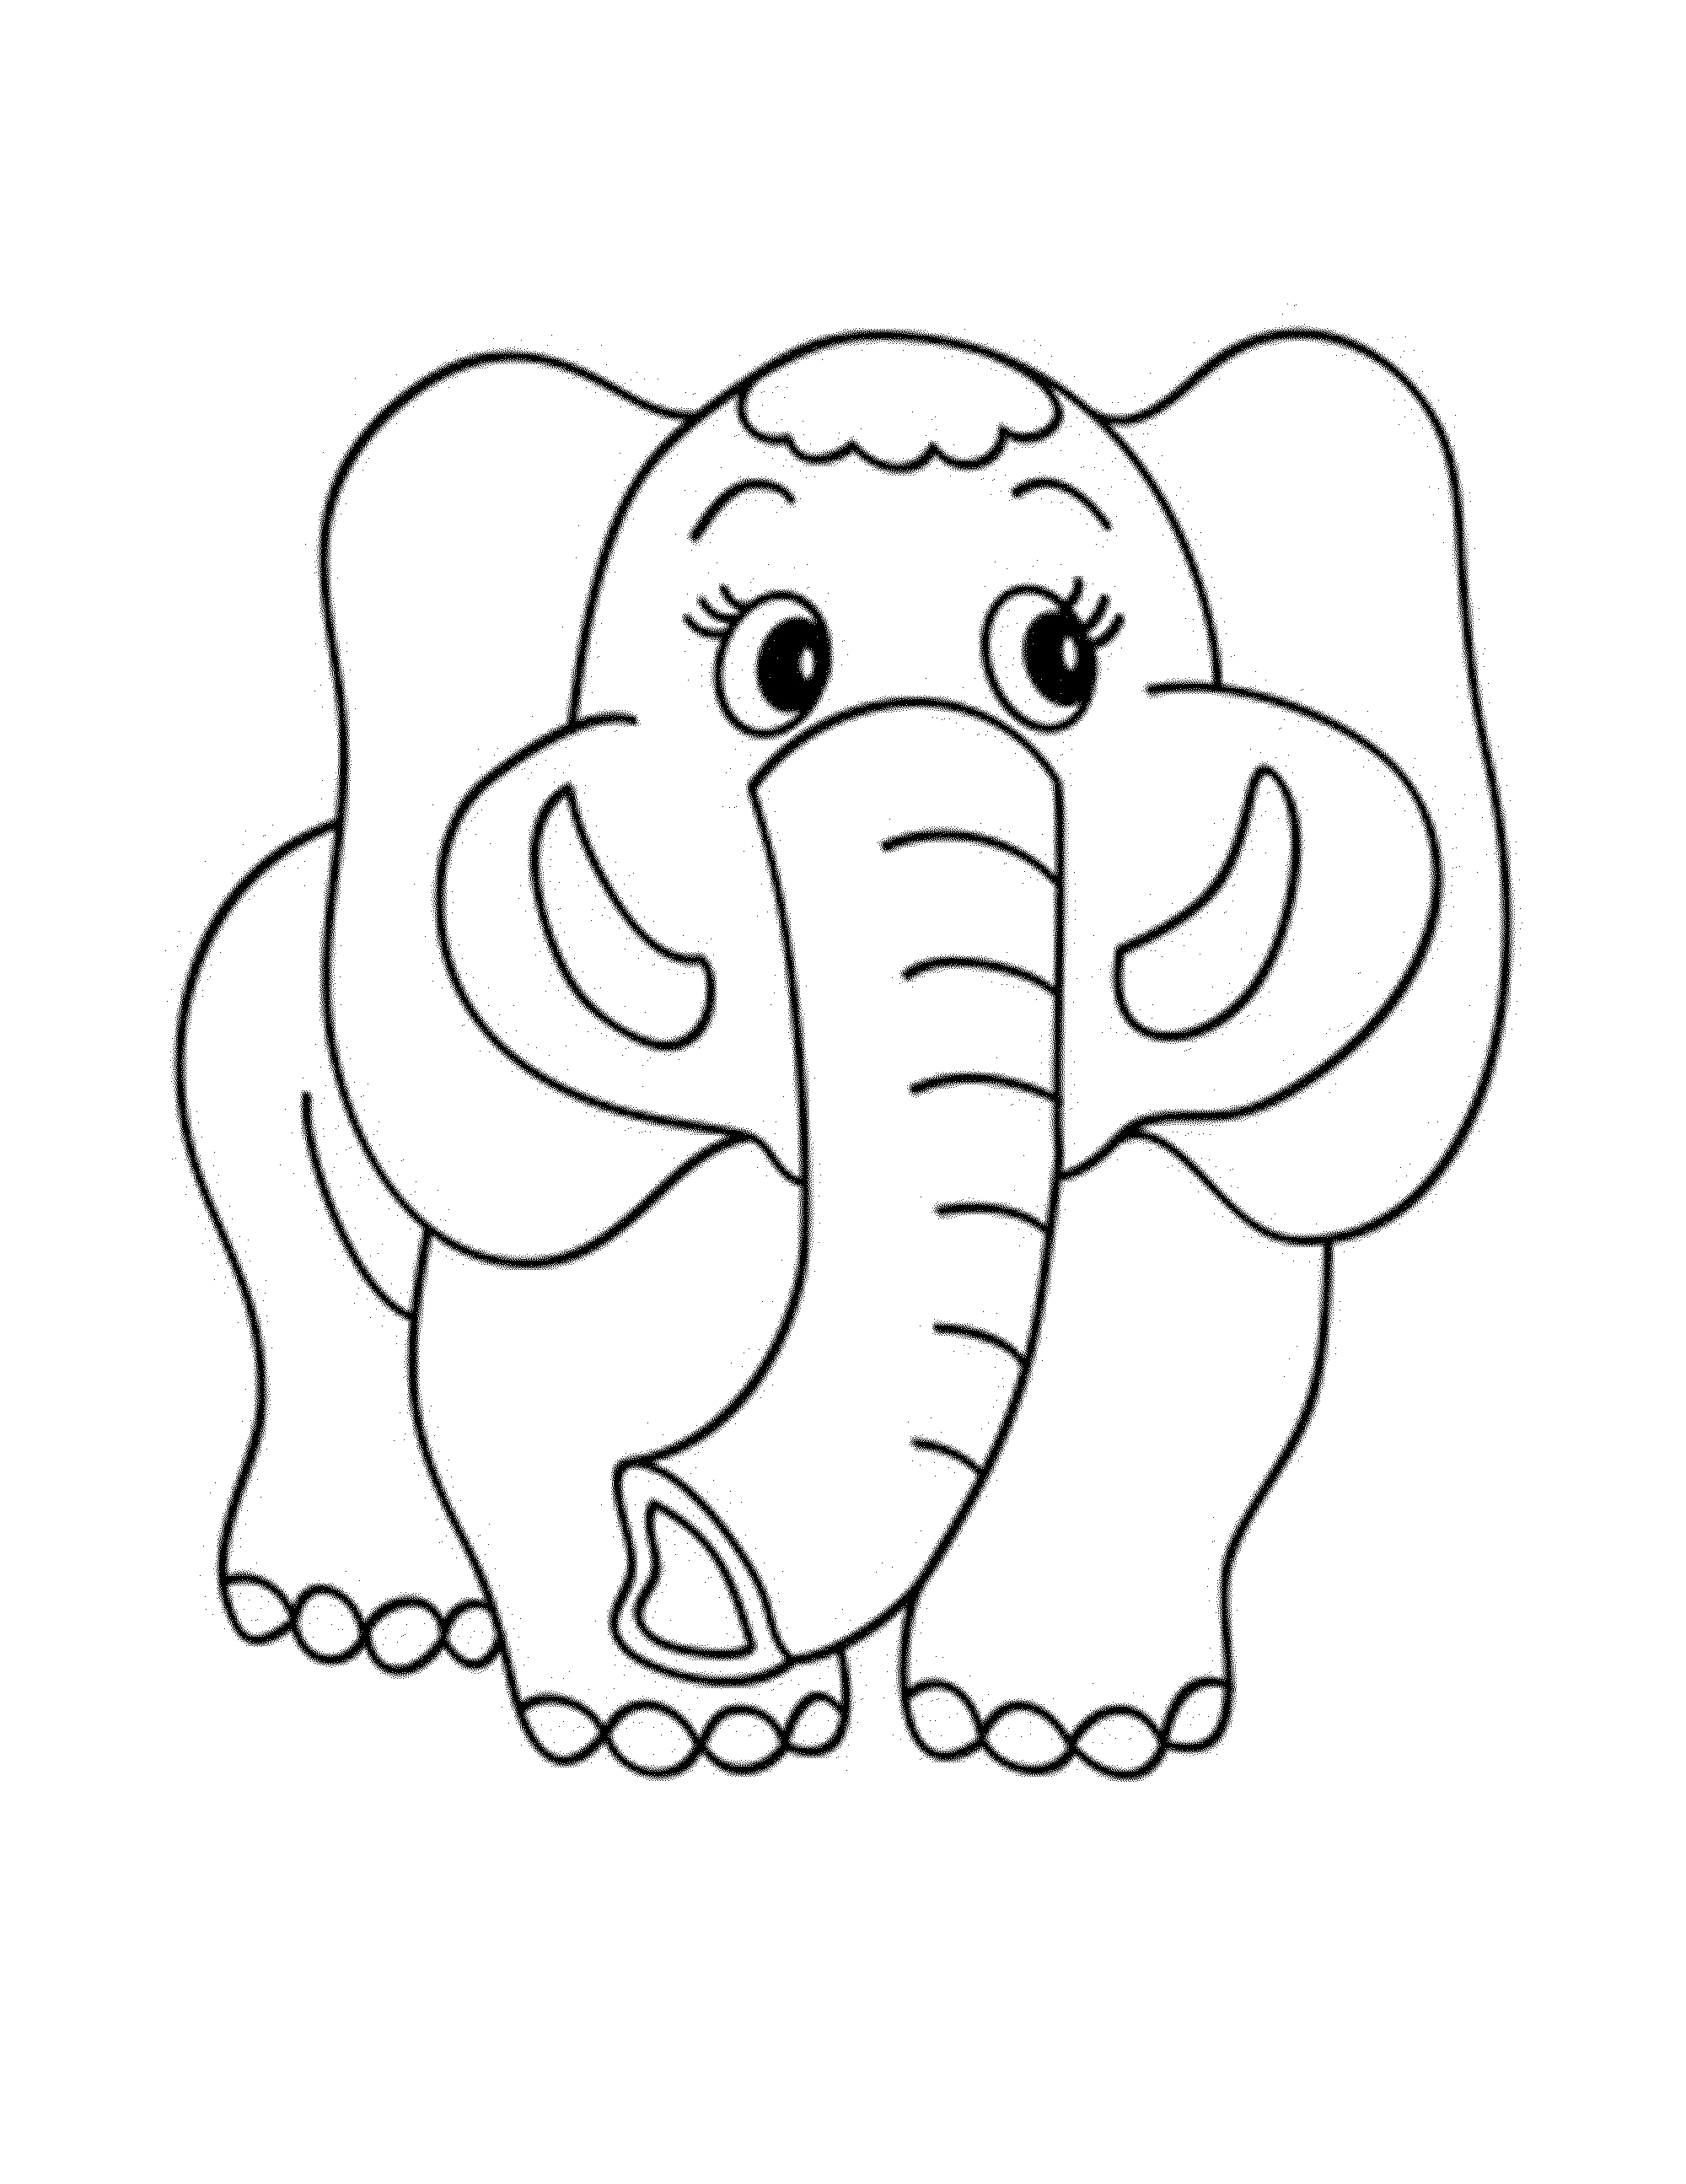 adorable baby elephant coloring pages cute cartoon baby elephant coloring pages printable baby elephant adorable coloring pages